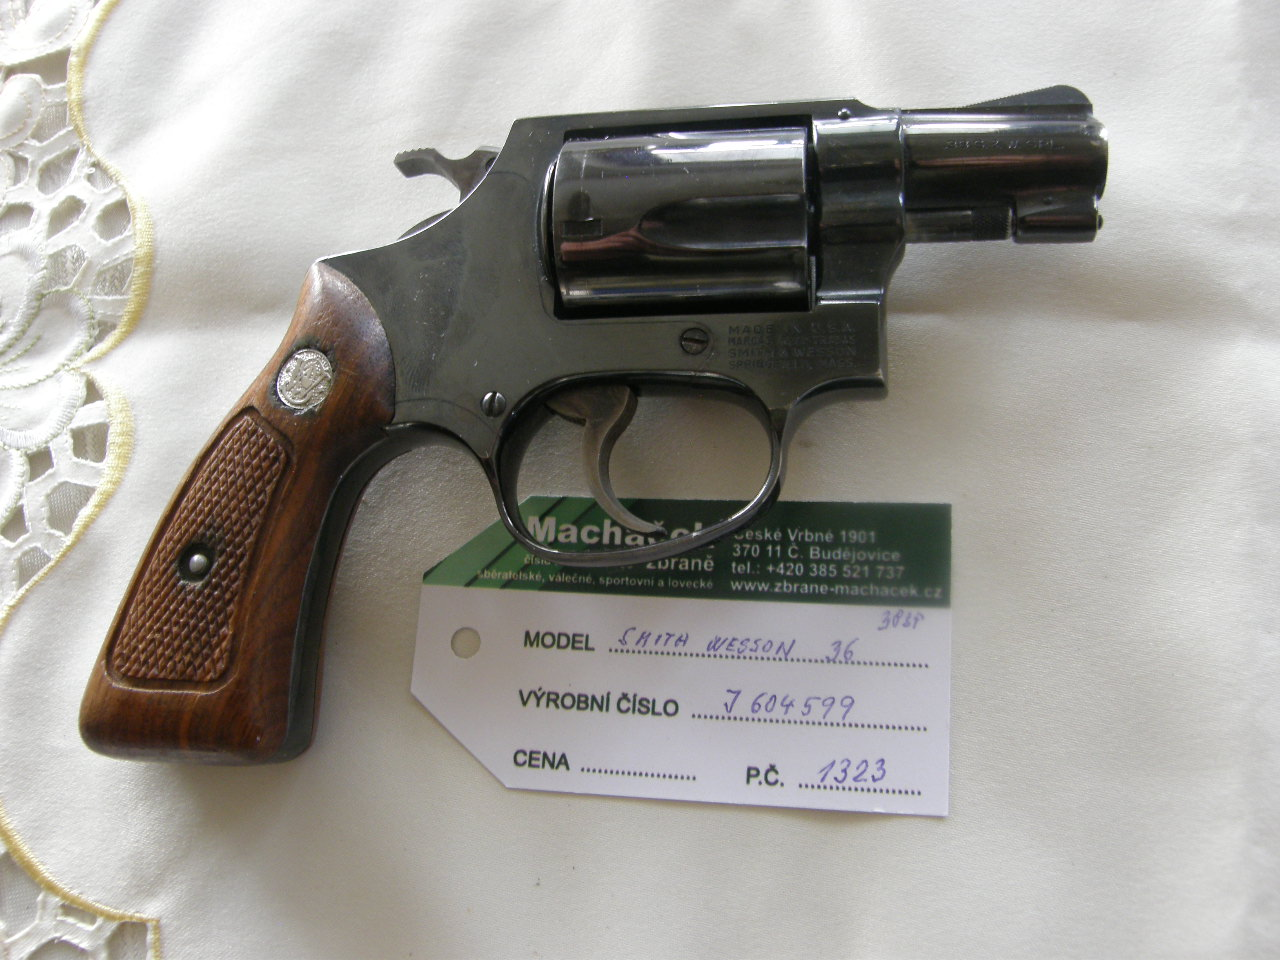 Revolver Smith Wesson Mod.36 v.č.J 604599 r. 28 SP.